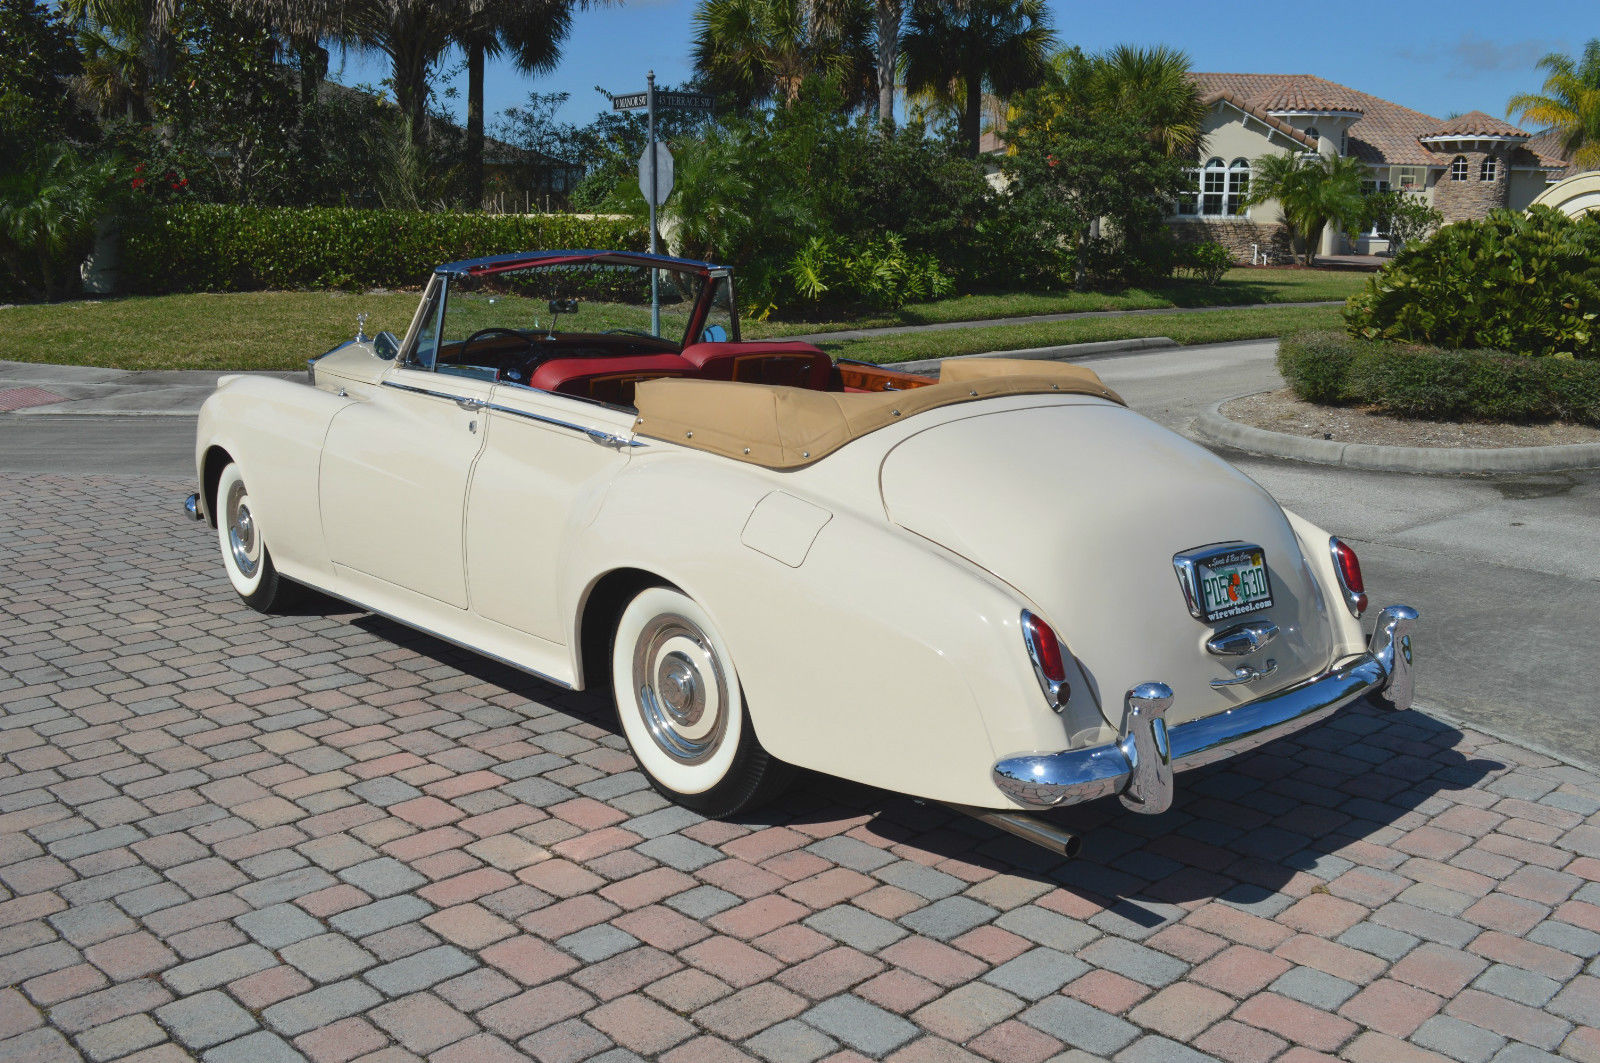 1960 silver cloud ii restored 4 door convertible lhd ac ivory red leather classic rolls. Black Bedroom Furniture Sets. Home Design Ideas